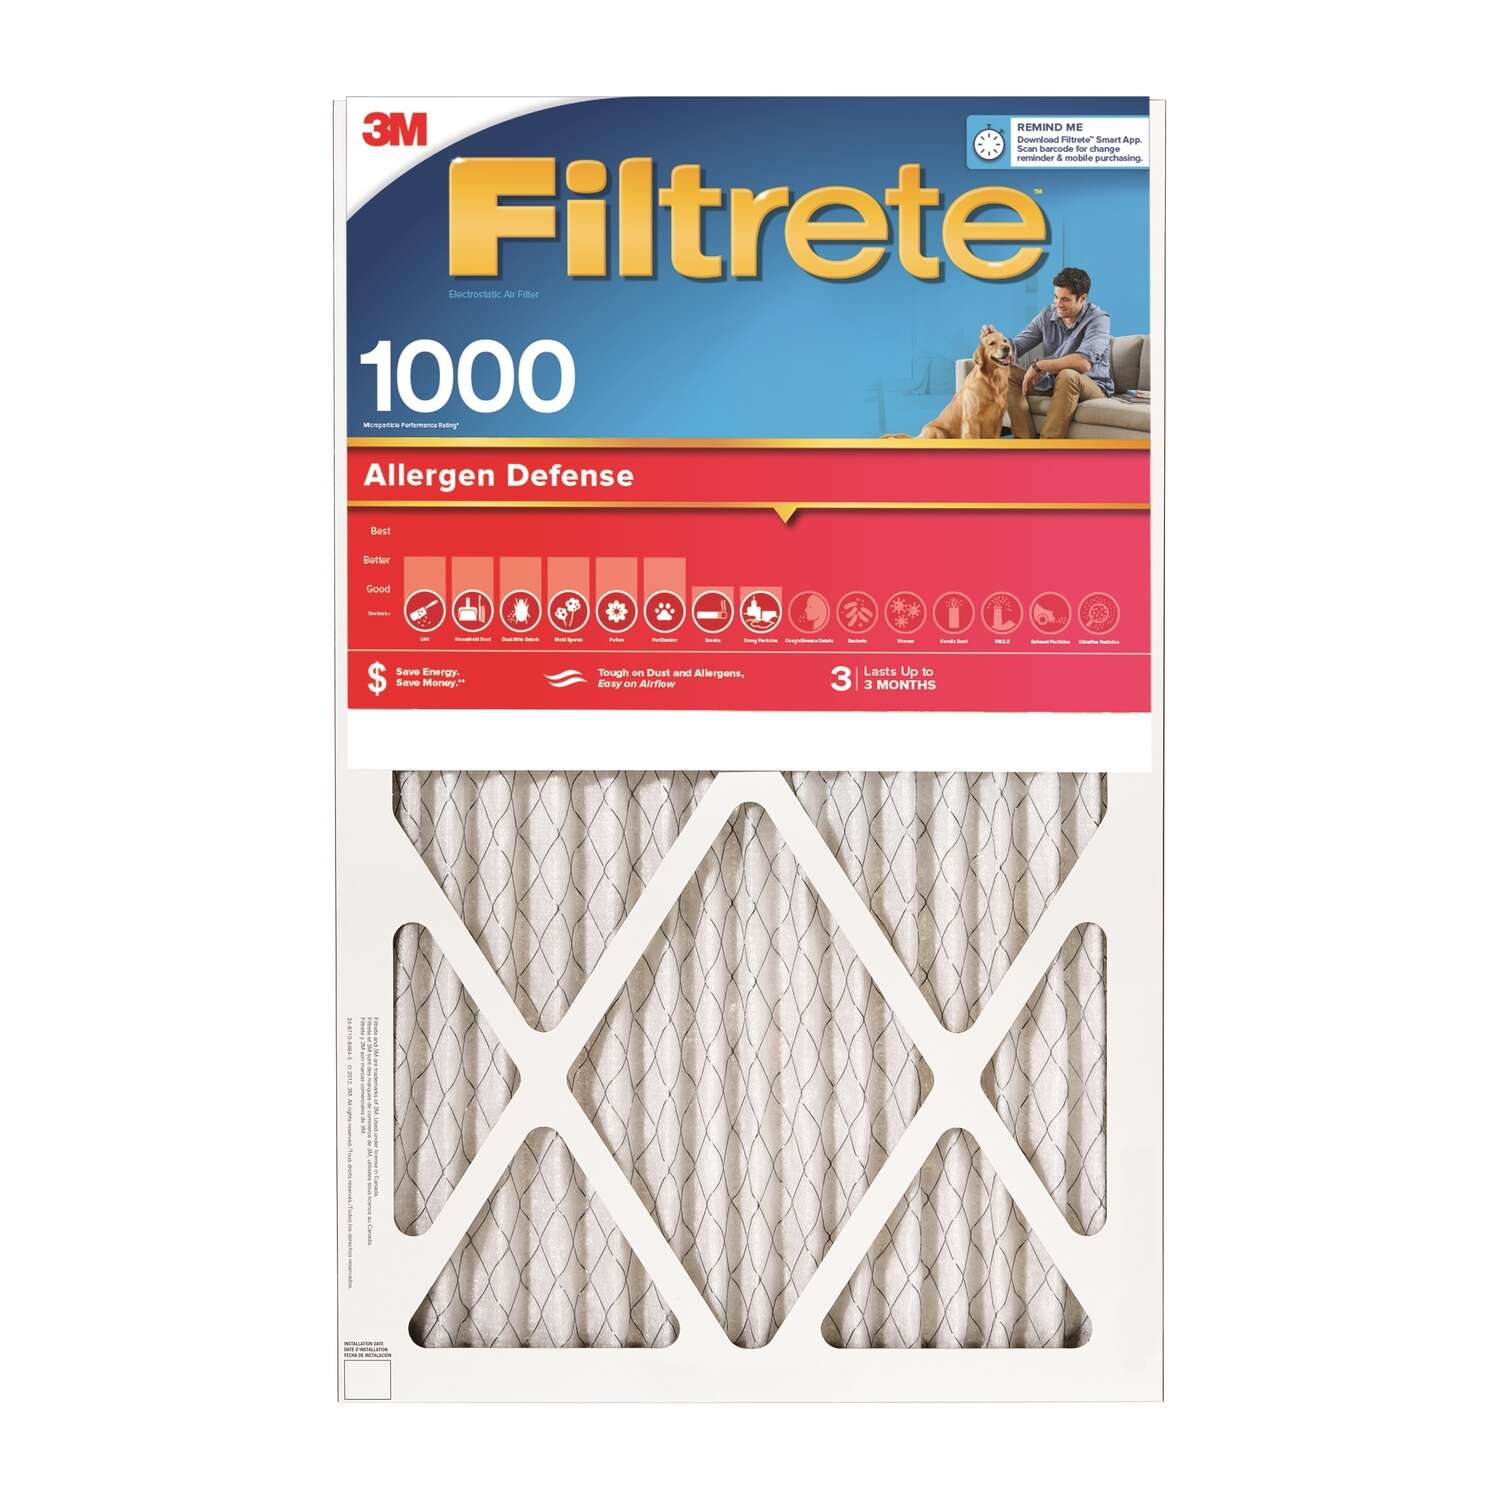 3M  Filtrete  14 in. W x 25 in. H x 1 in. D 11 MERV Pleated Allergen Air Filter